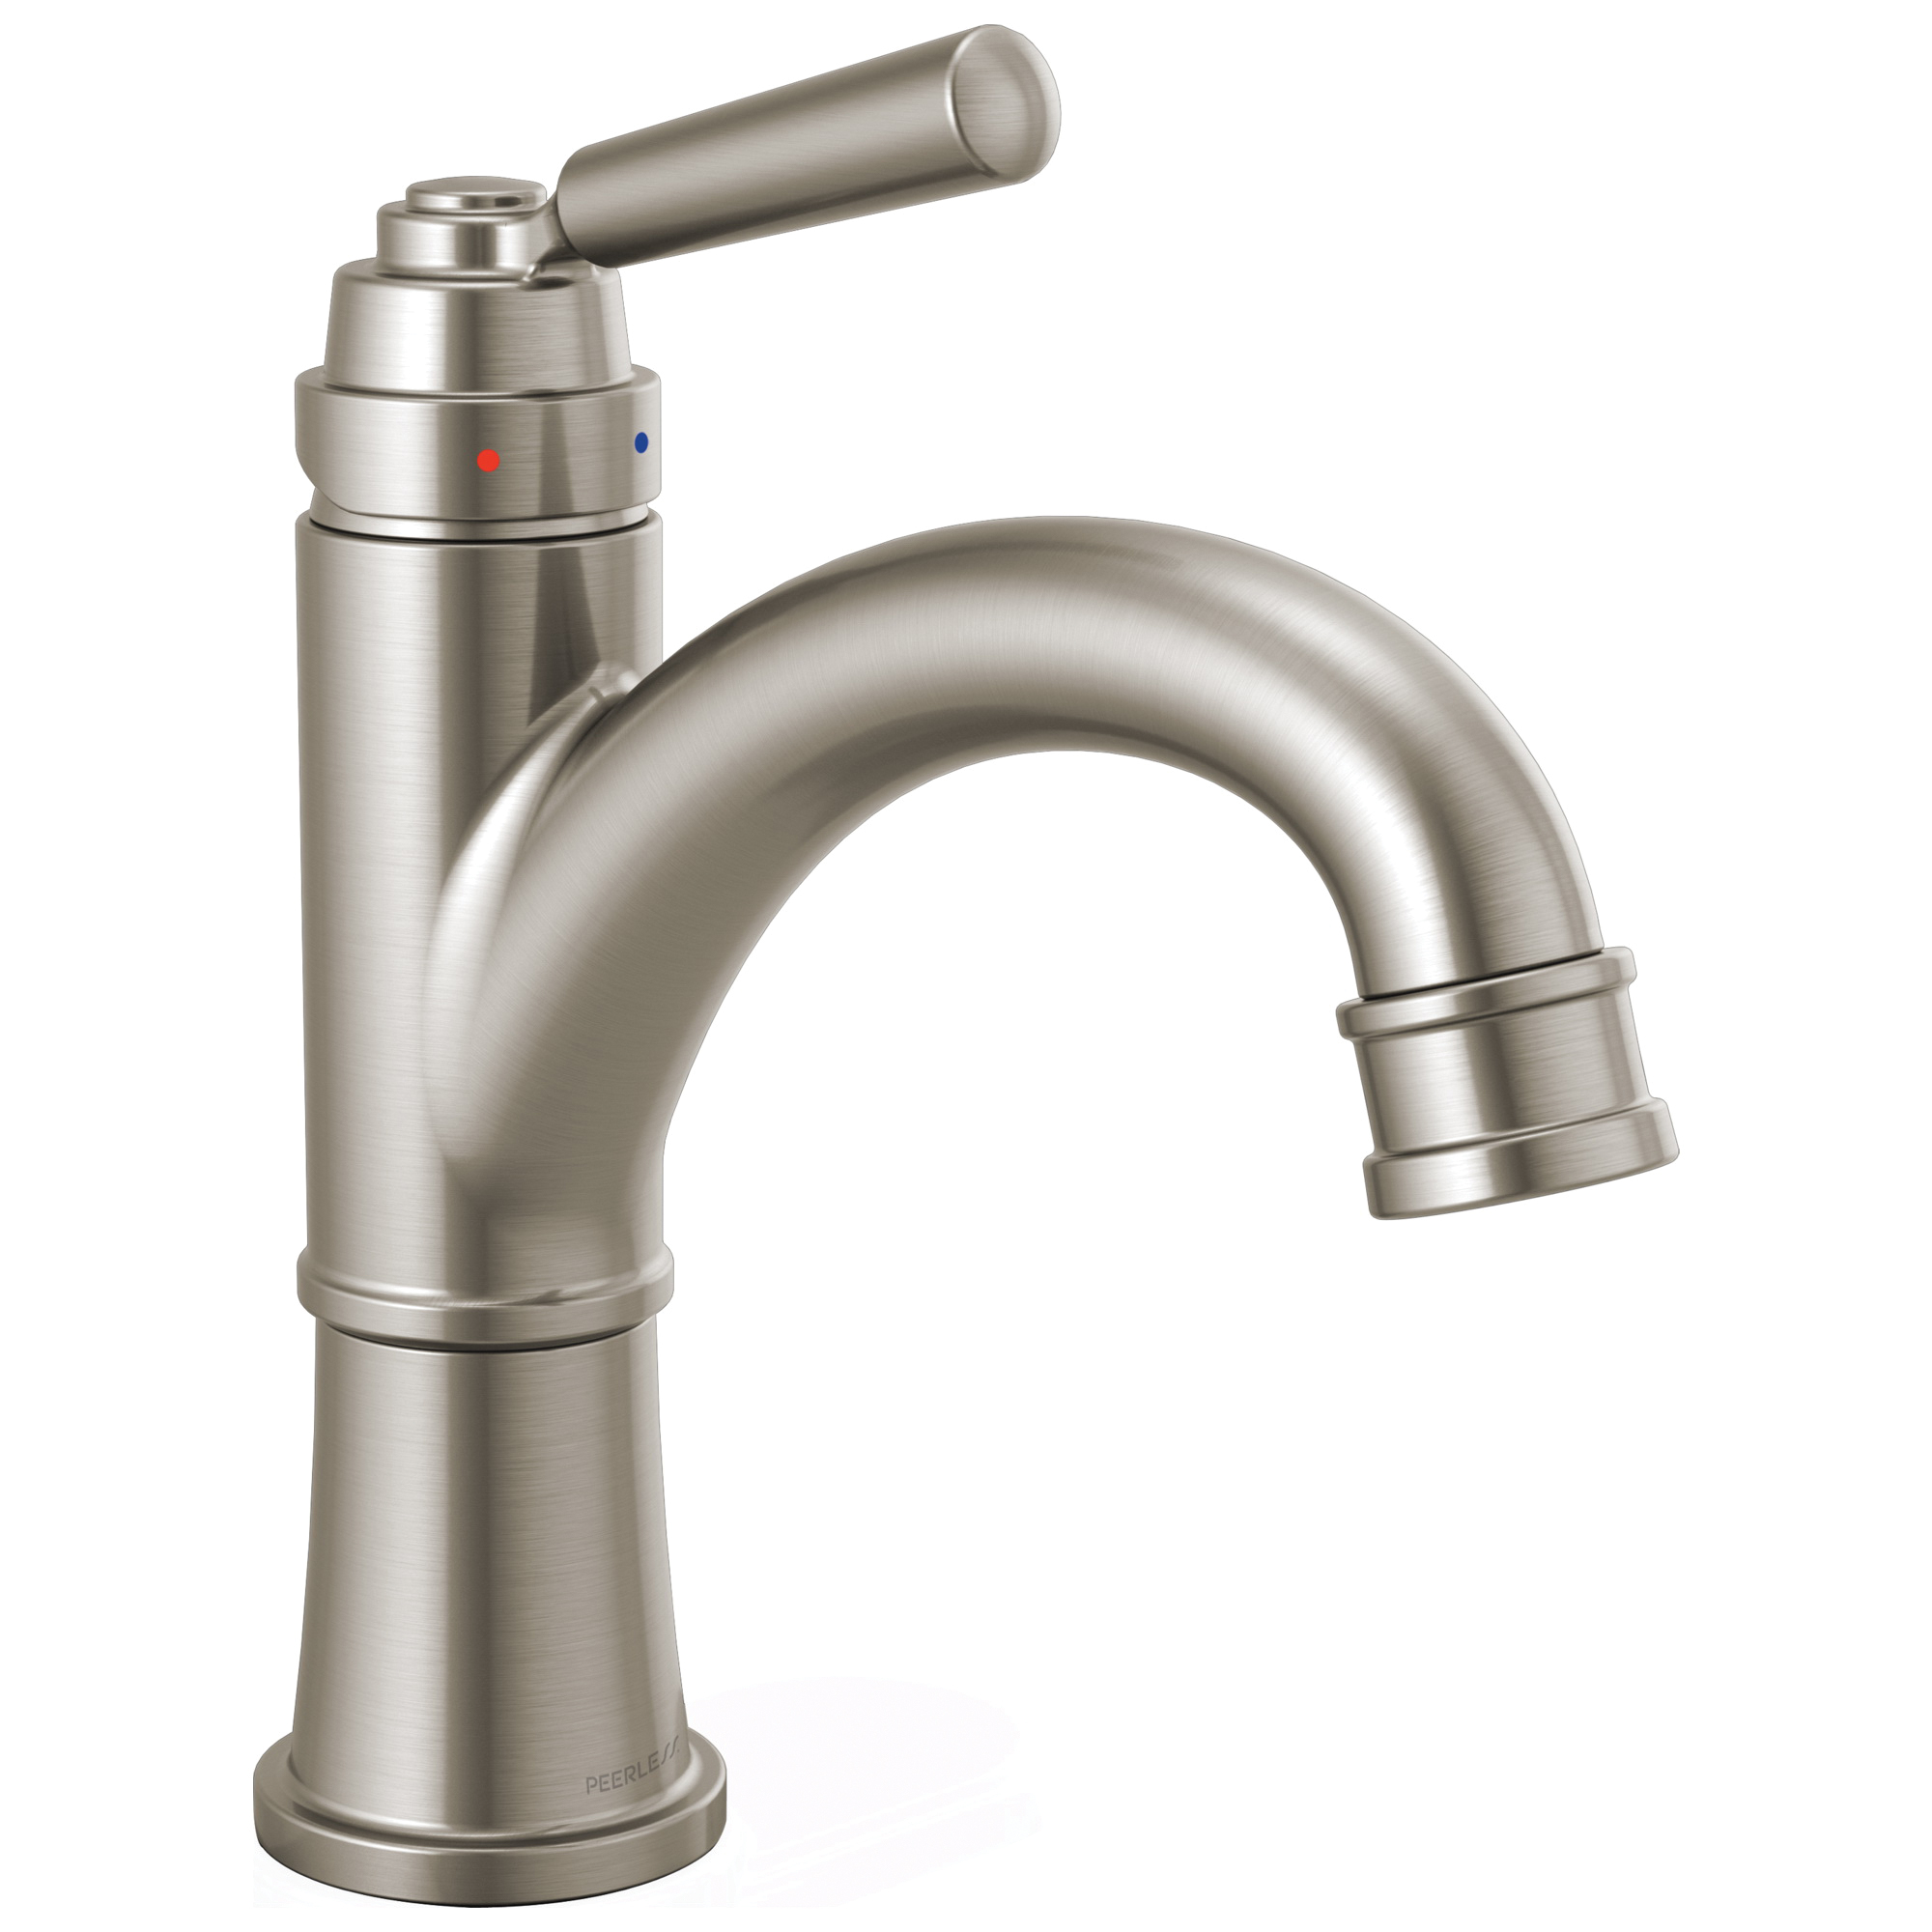 Peerless® P1523LF-BN Bathroom Faucet, Westchester™, Brushed Nickel, 1 Handles, Pop-Up Drain, 1 gpm